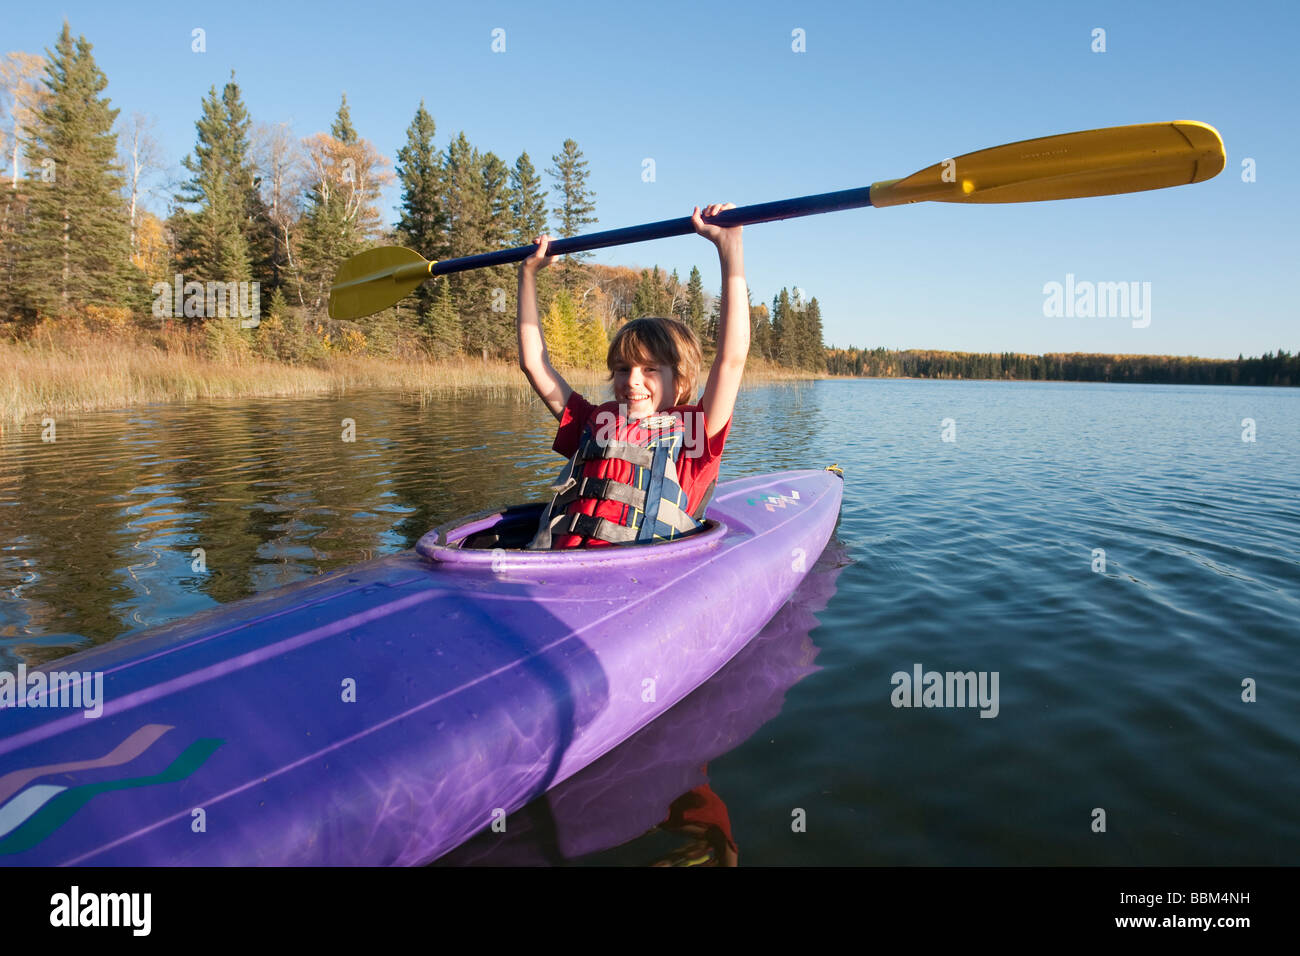 Smiling 10 year old boy holding paddle above kayak, Lake Katherine, Riding Mountain National Park, Manitoba - Stock Image